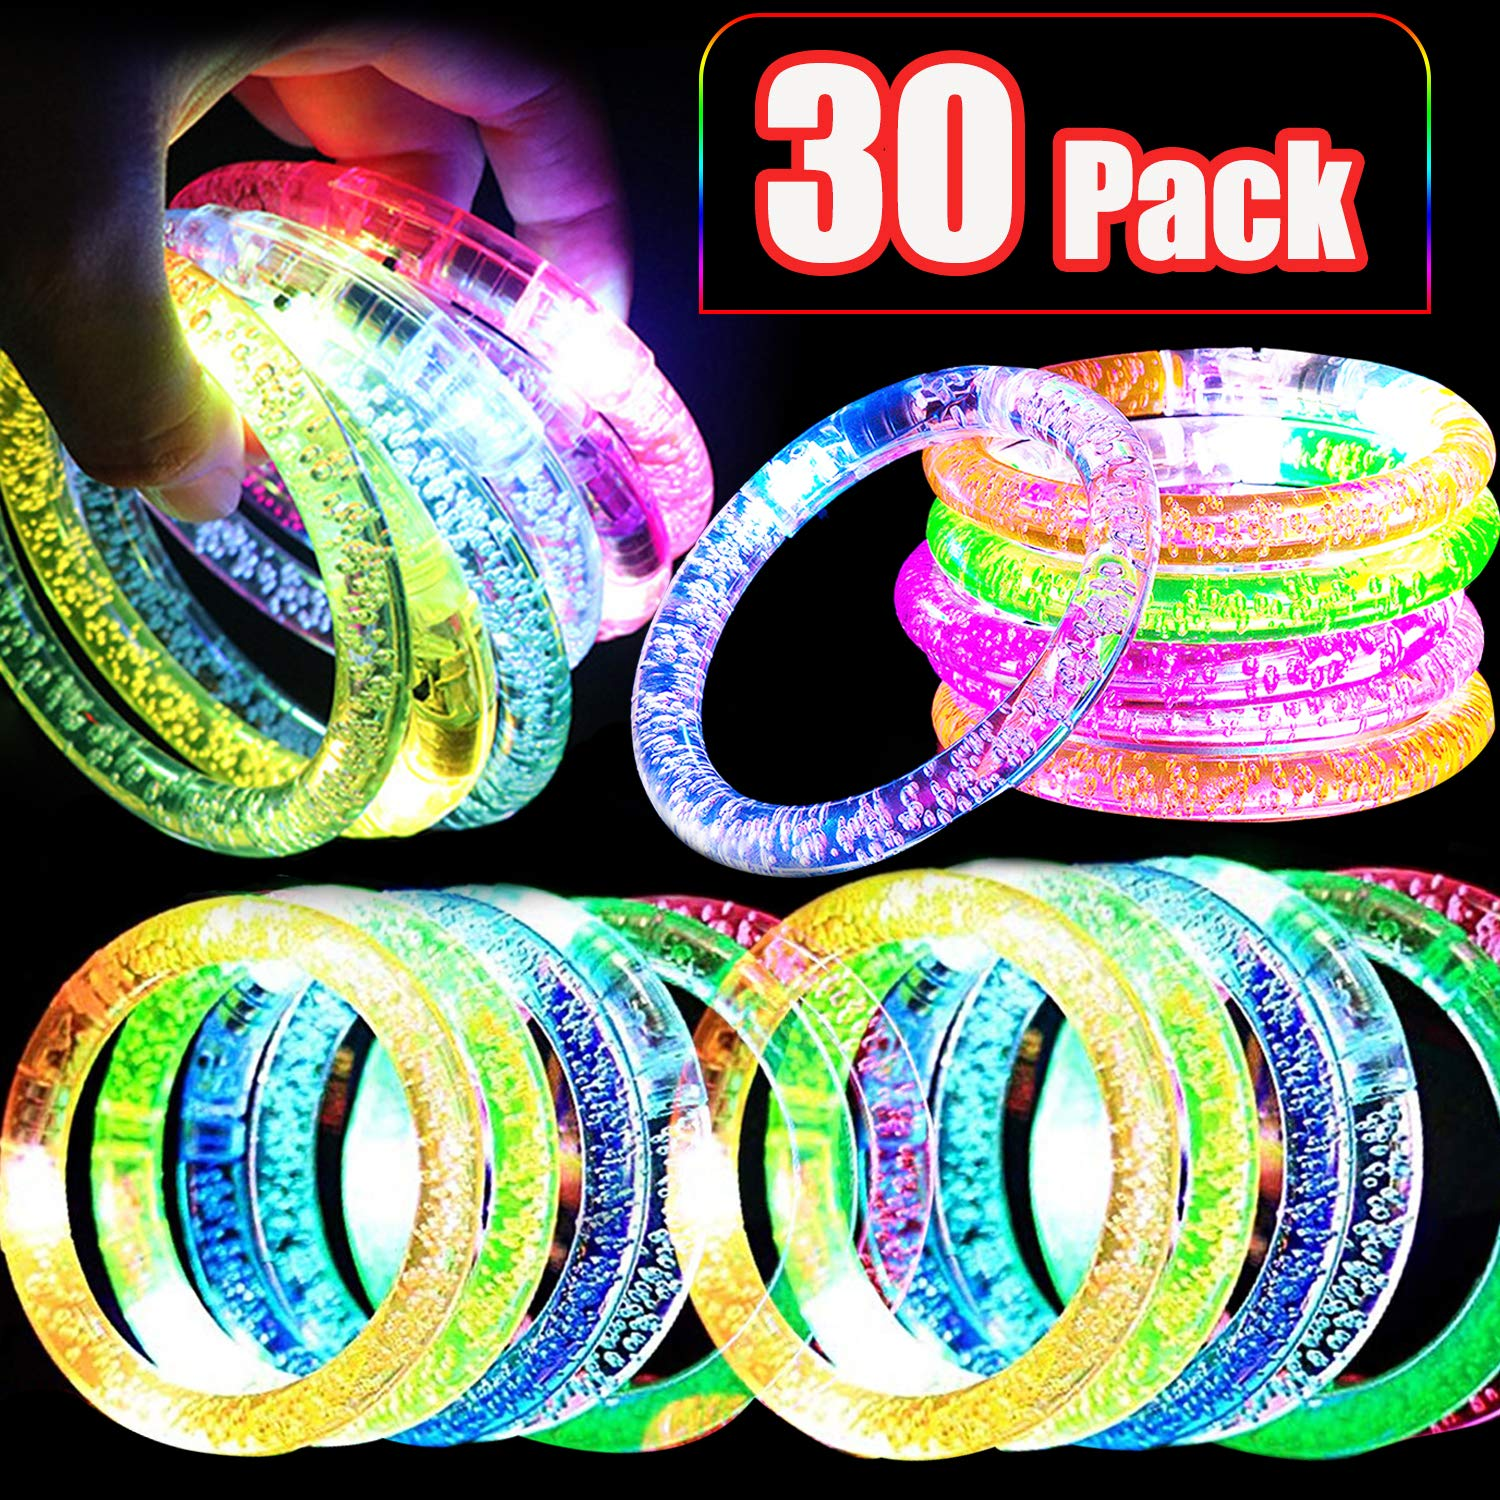 30 Pack LED Bracelet Bulk Glow Sticks Bracelet Party Pack Party Favors for Kids Glow in the Dark for Halloween Parties Stage Bar Festival CelebrationsRave Party Classroom Party by TURNMEON